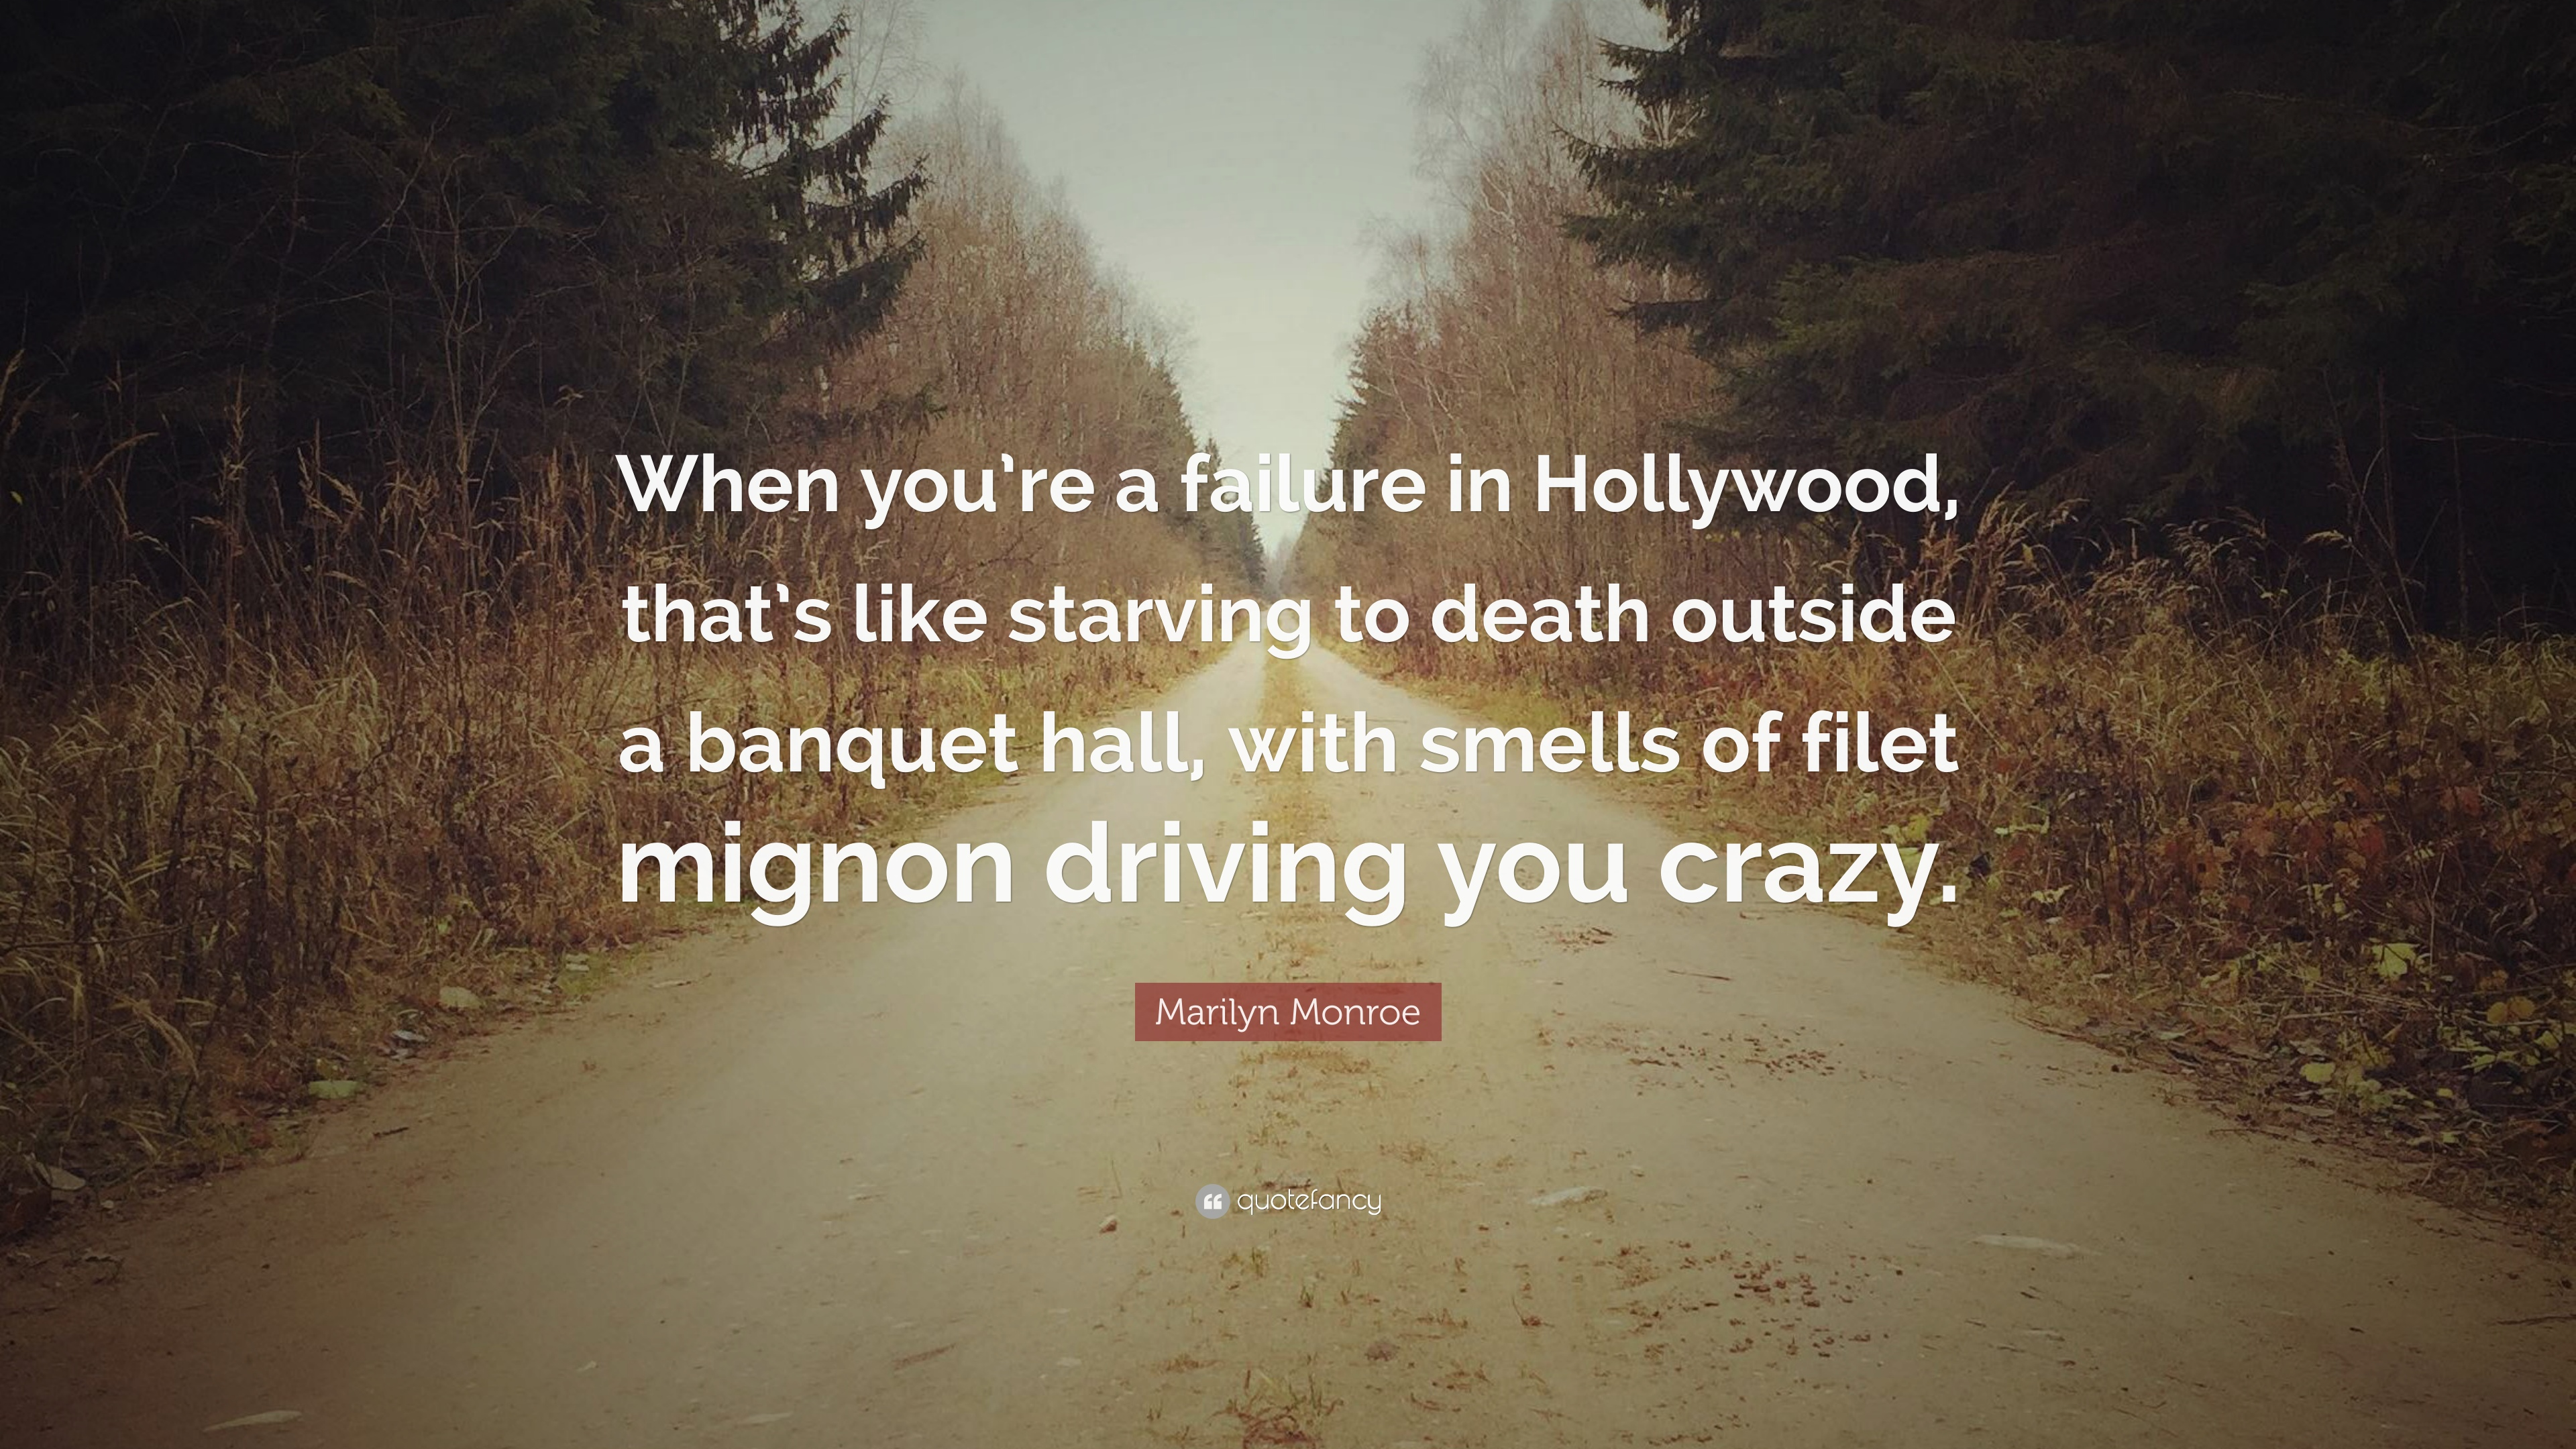 Marilyn Monroe Quote: U201cWhen Youu0027re A Failure In Hollywood, Thatu0027s Like